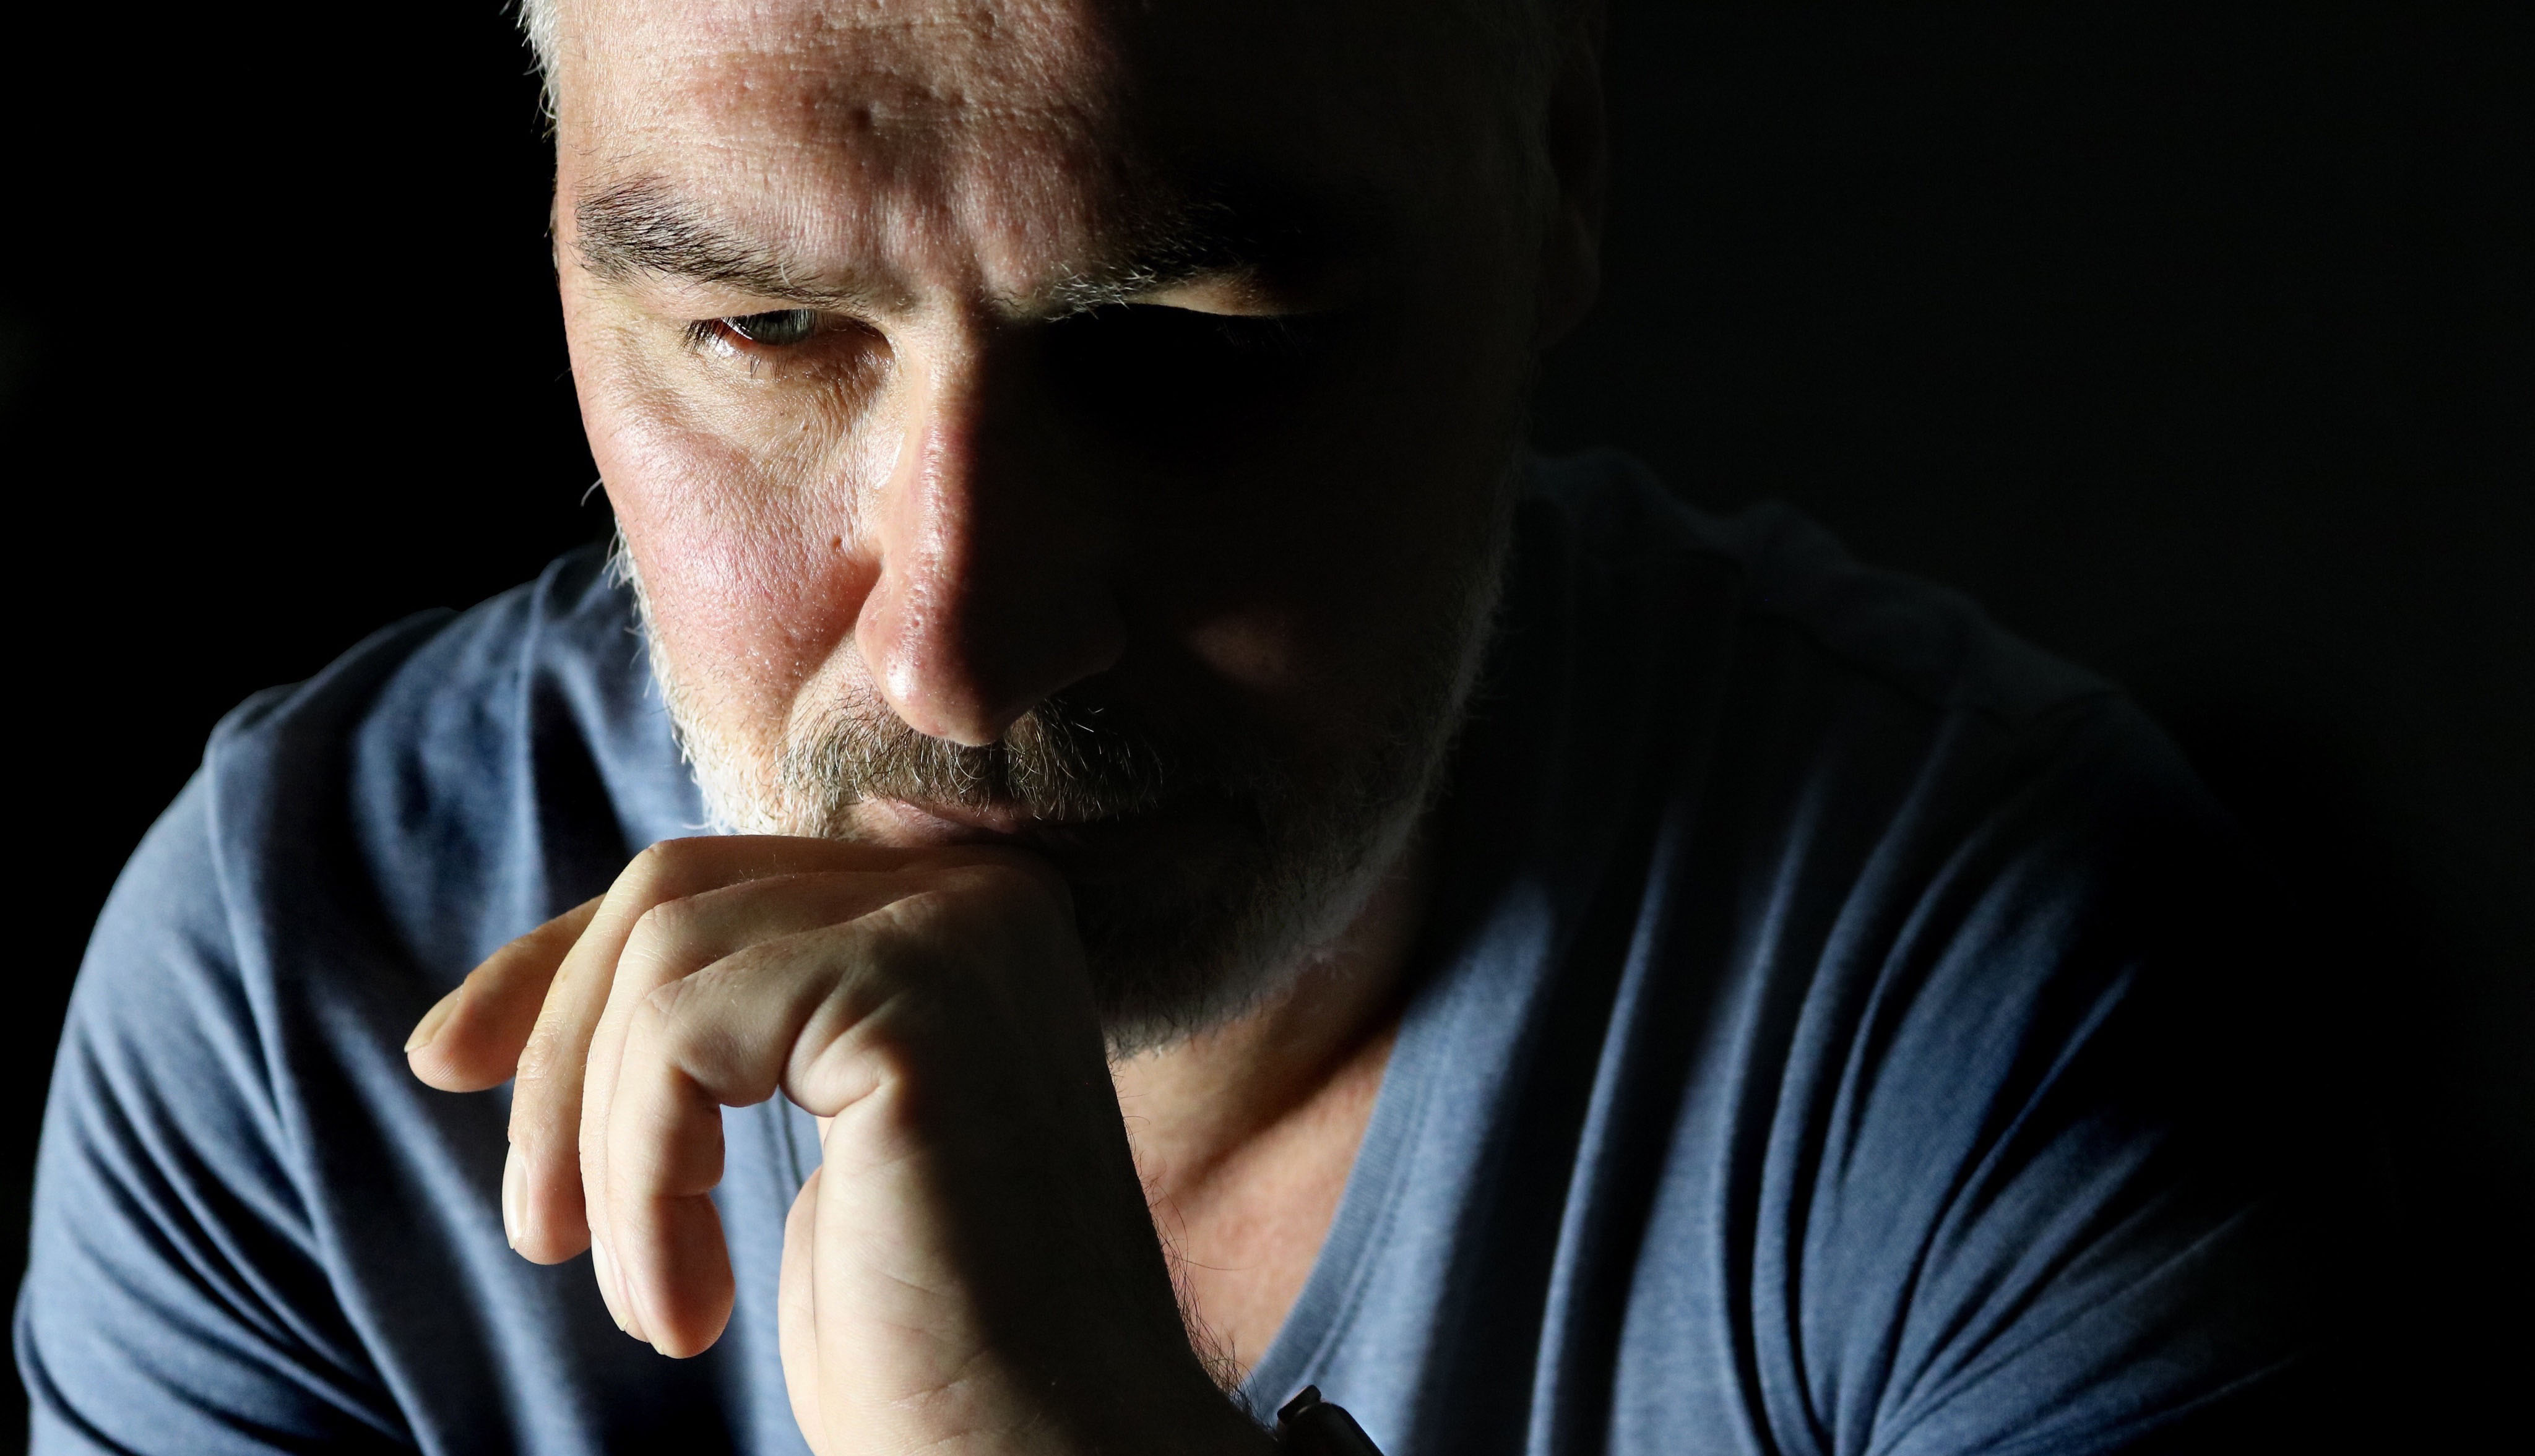 close up of a man looking sad and confused, set against a black background